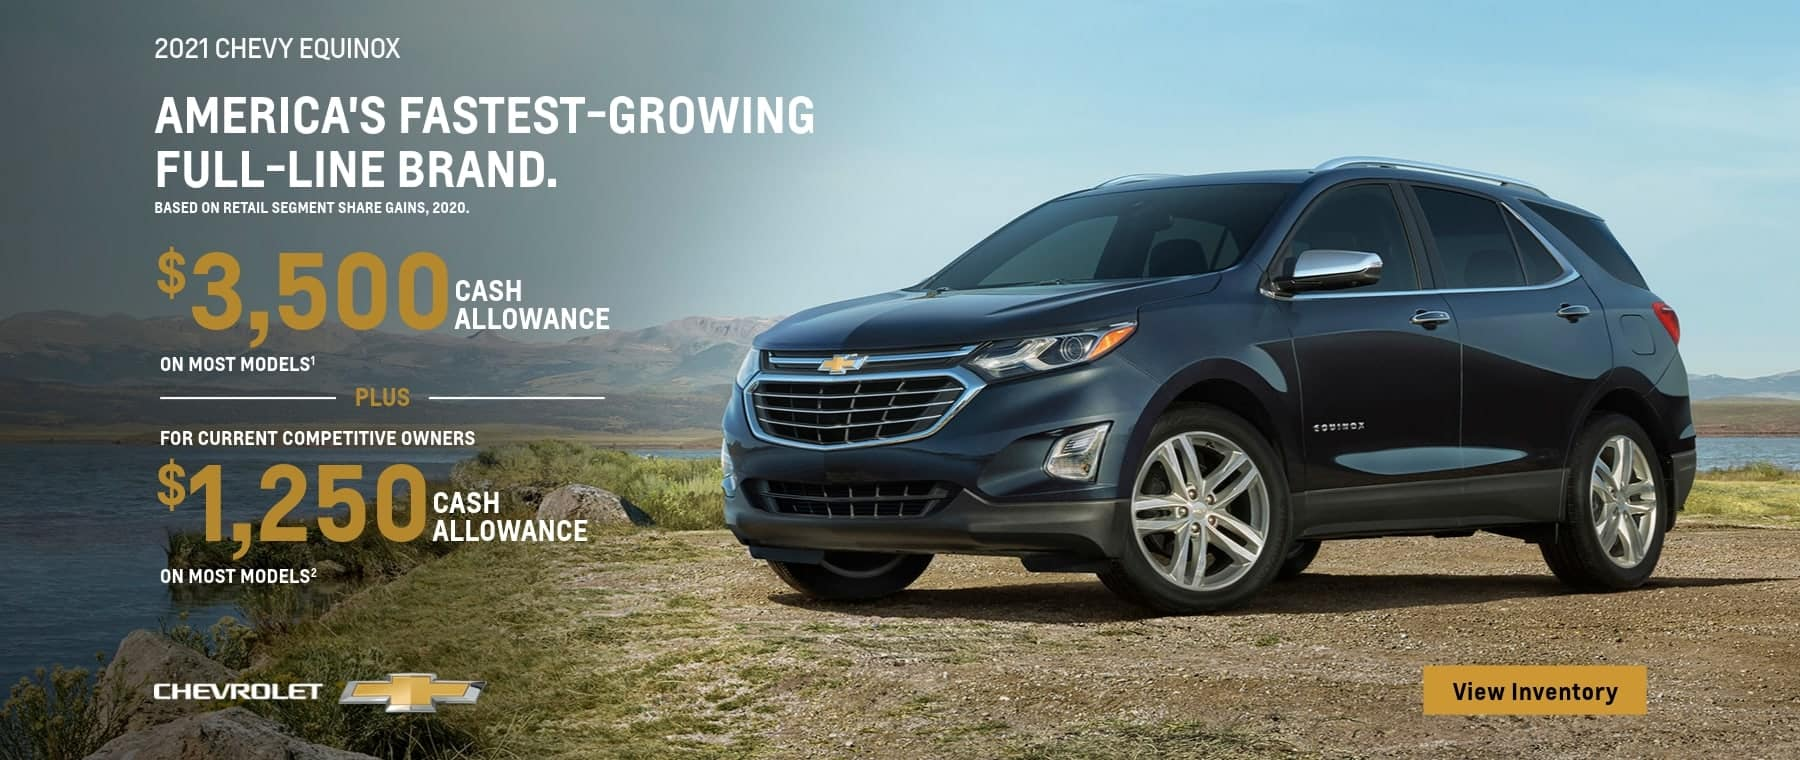 2021 Chevy Equinox $3,500 cash allowance on most models plus current competitive owners $1,250 Cash Allowance on most models.